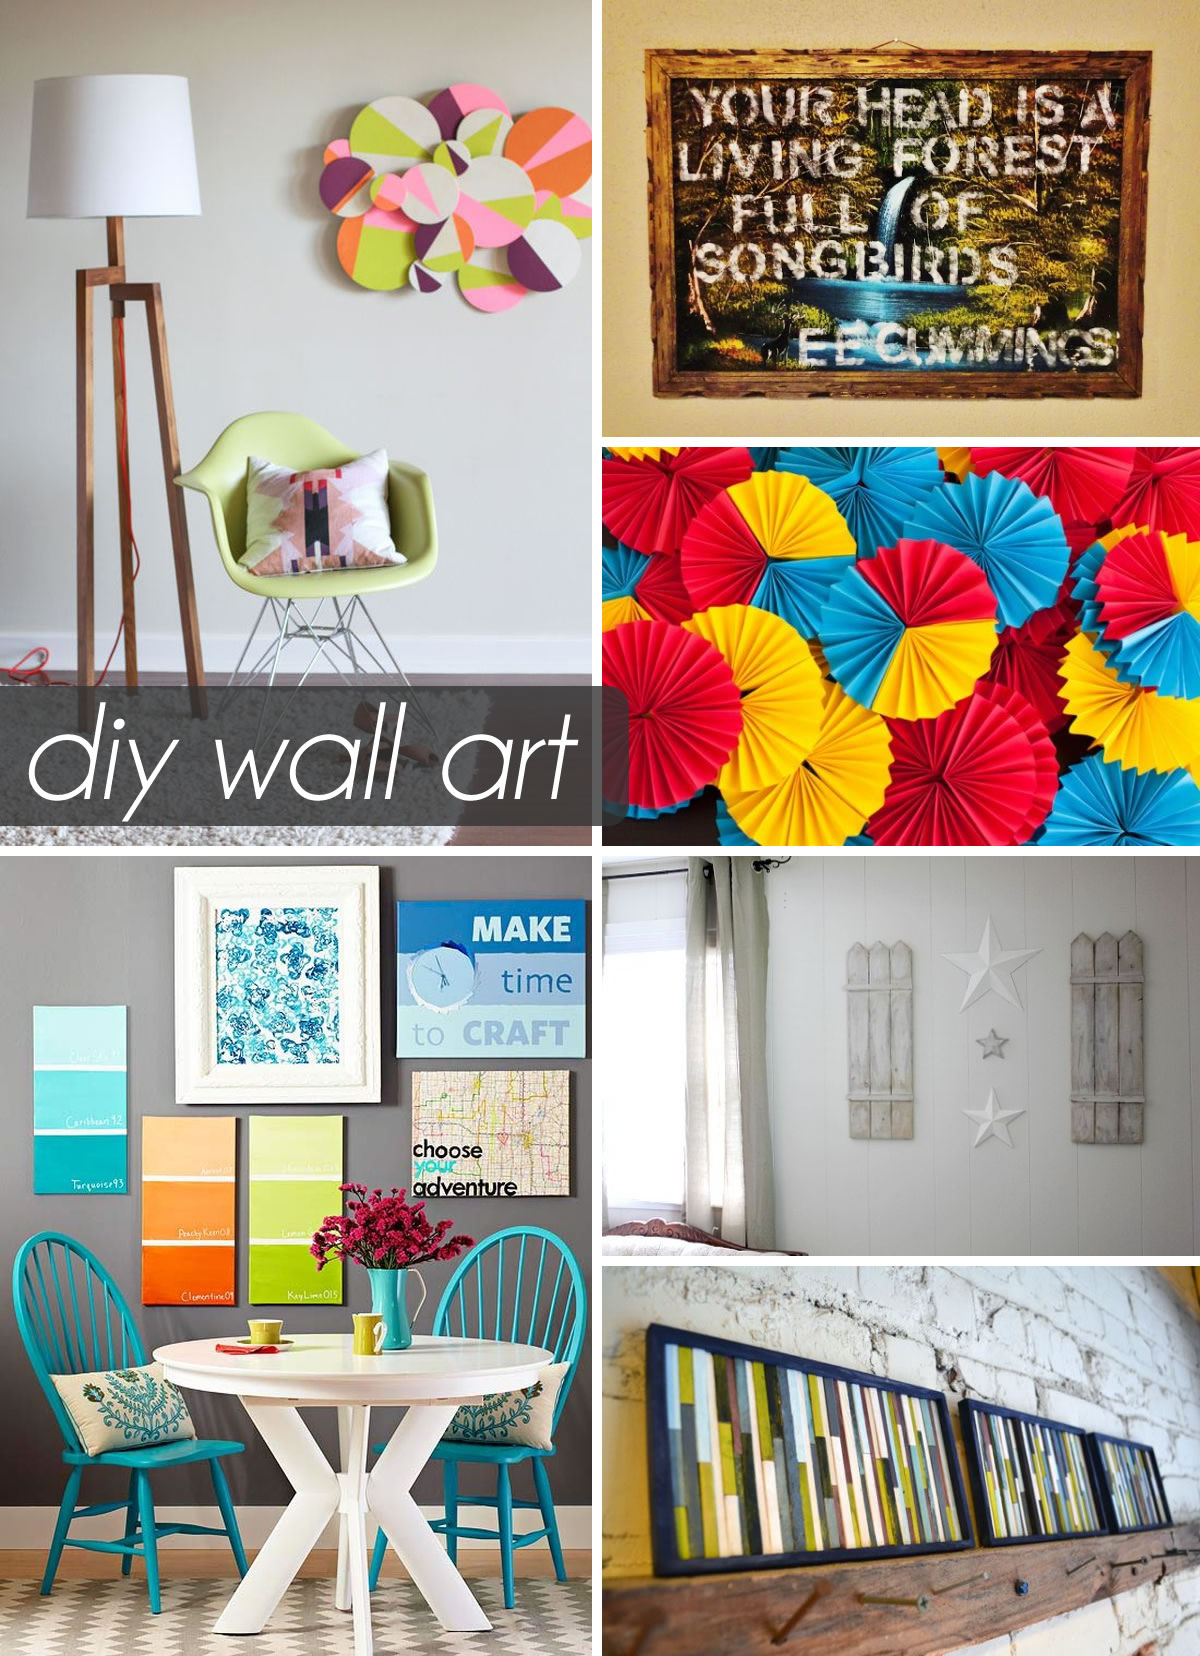 wall art ideas for living room diy.  50 Beautiful DIY Wall Art Ideas For Your Home